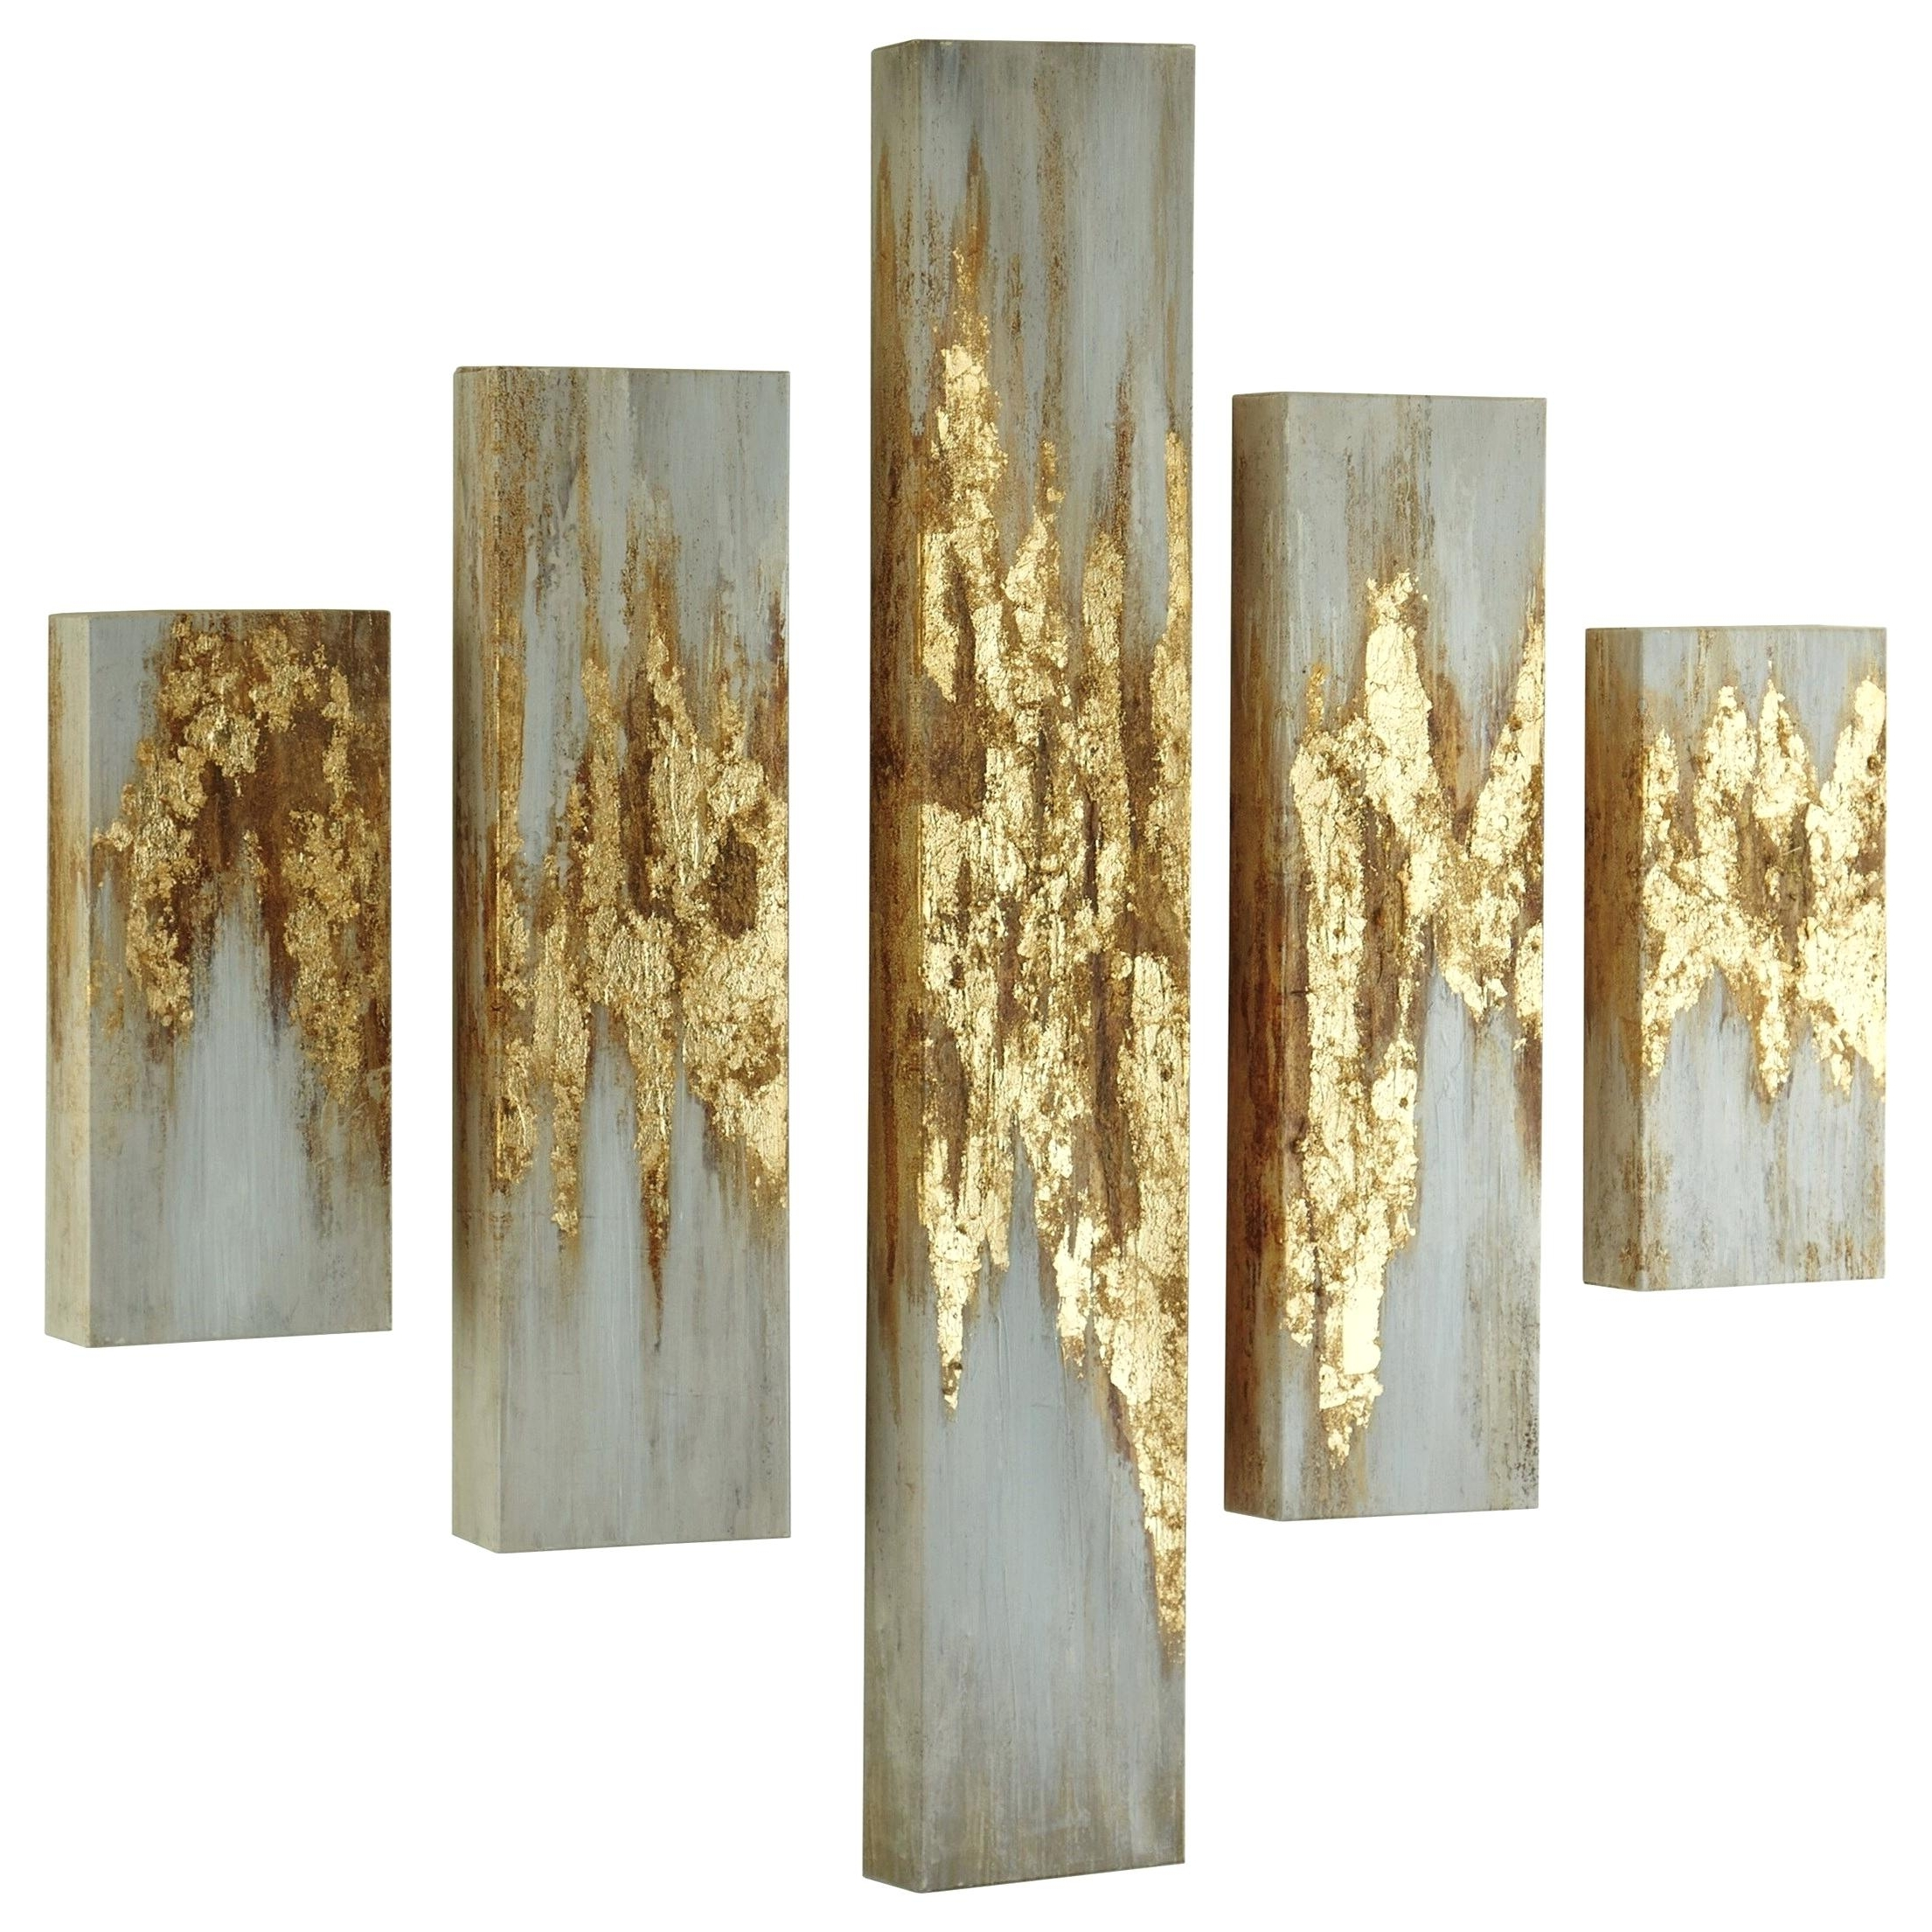 Ashley Wall Signature Designwall Art Gold Finish White Wall Art Intended For Most Recent Ashley Furniture Wall Art (Gallery 15 of 15)